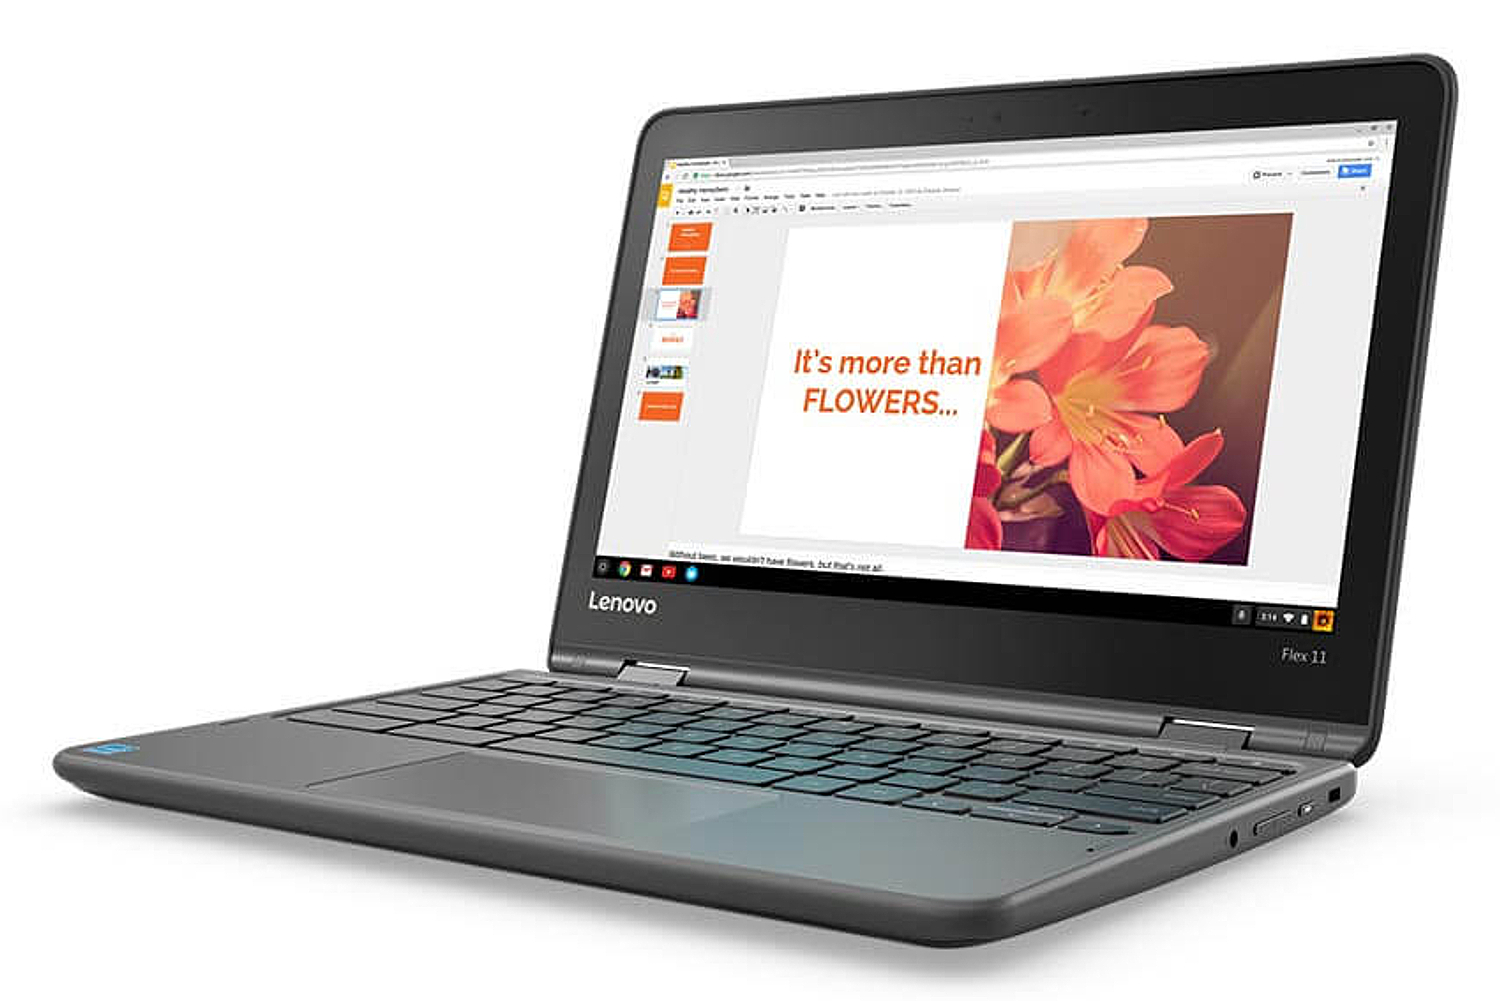 Lenovo Announces 2-in-1 Flex 11 Chromebook for $279